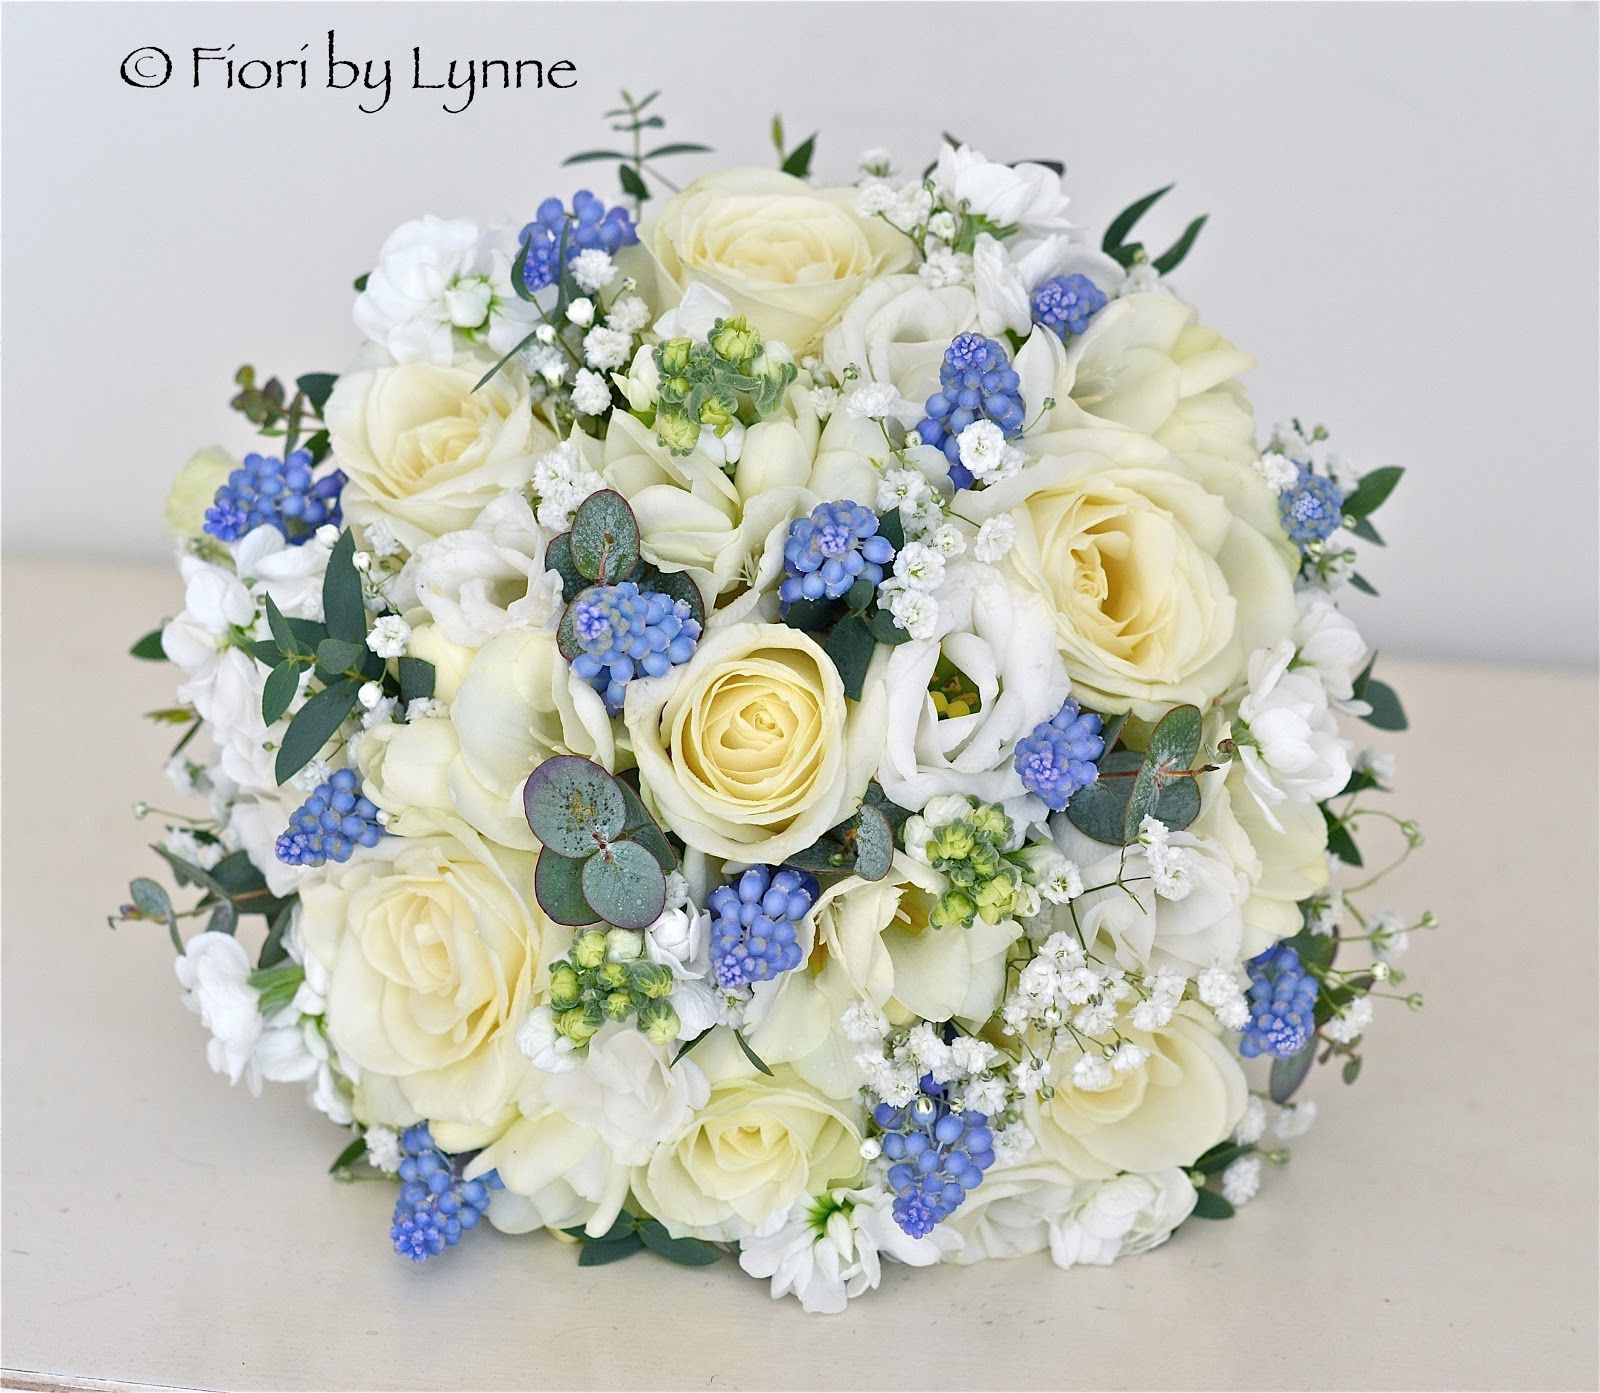 Country style blue wedding blue and white bouquet country style country style blue wedding blue and white bouquet country style using roses stocks izmirmasajfo Image collections